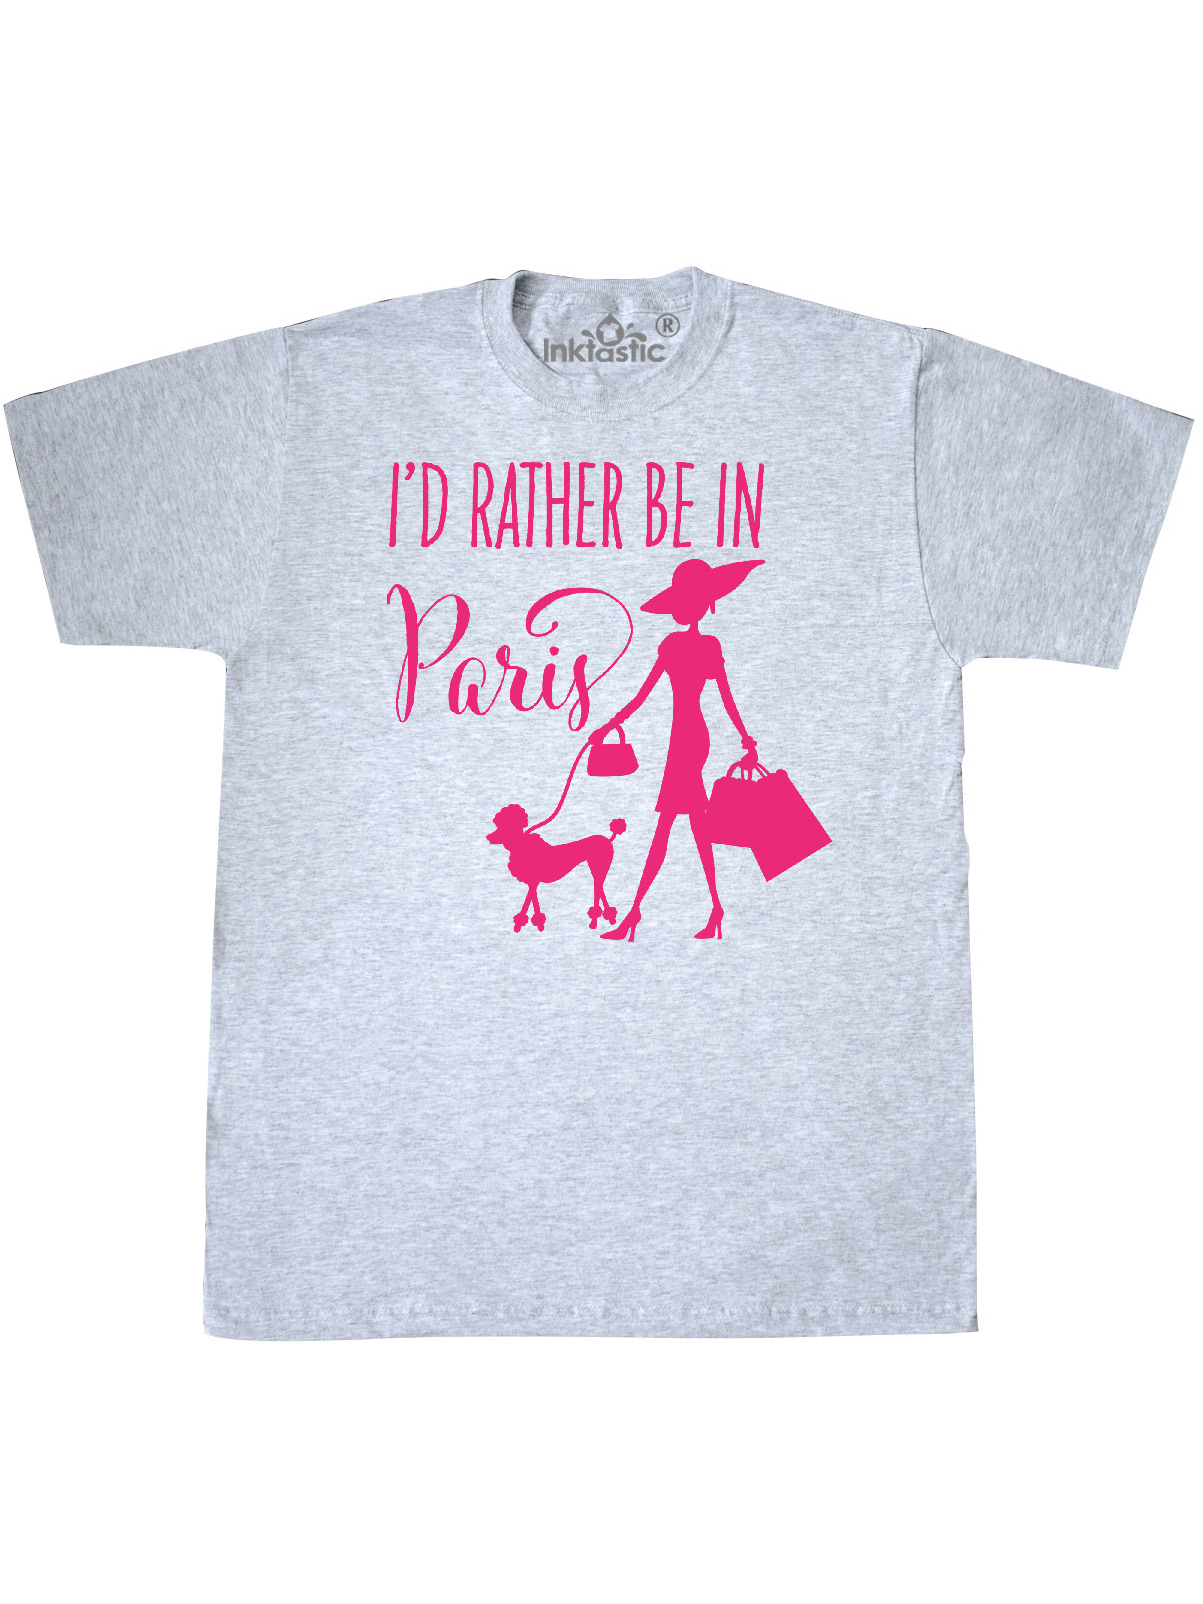 Shopping and Travel in Pink Toddler T-Shirt inktastic Id Rather Be in Paris